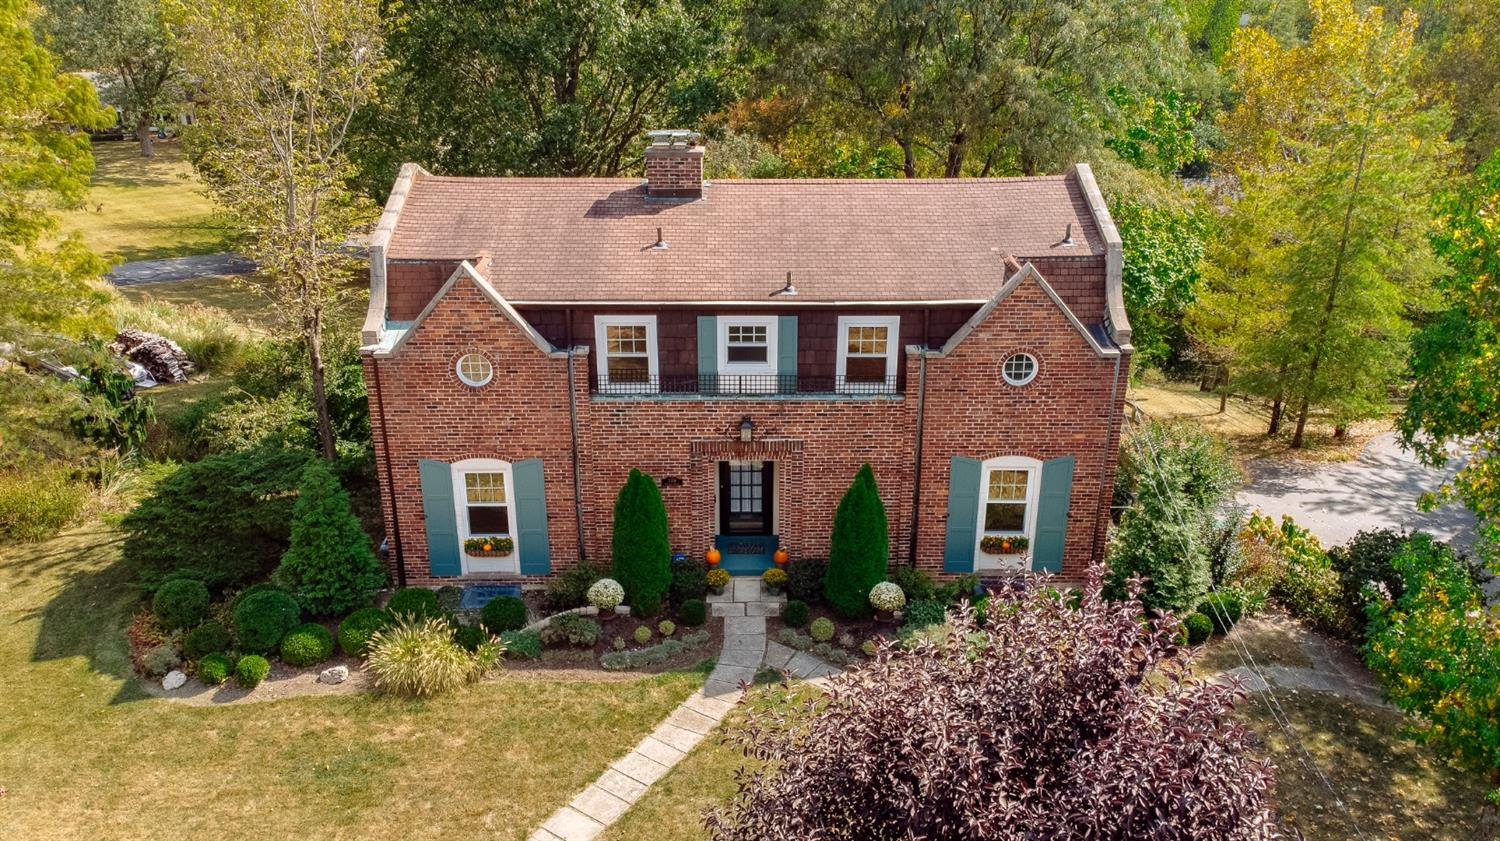 Photo 3 for 2339 Raeburn Ter Mt. Airy, OH 45223